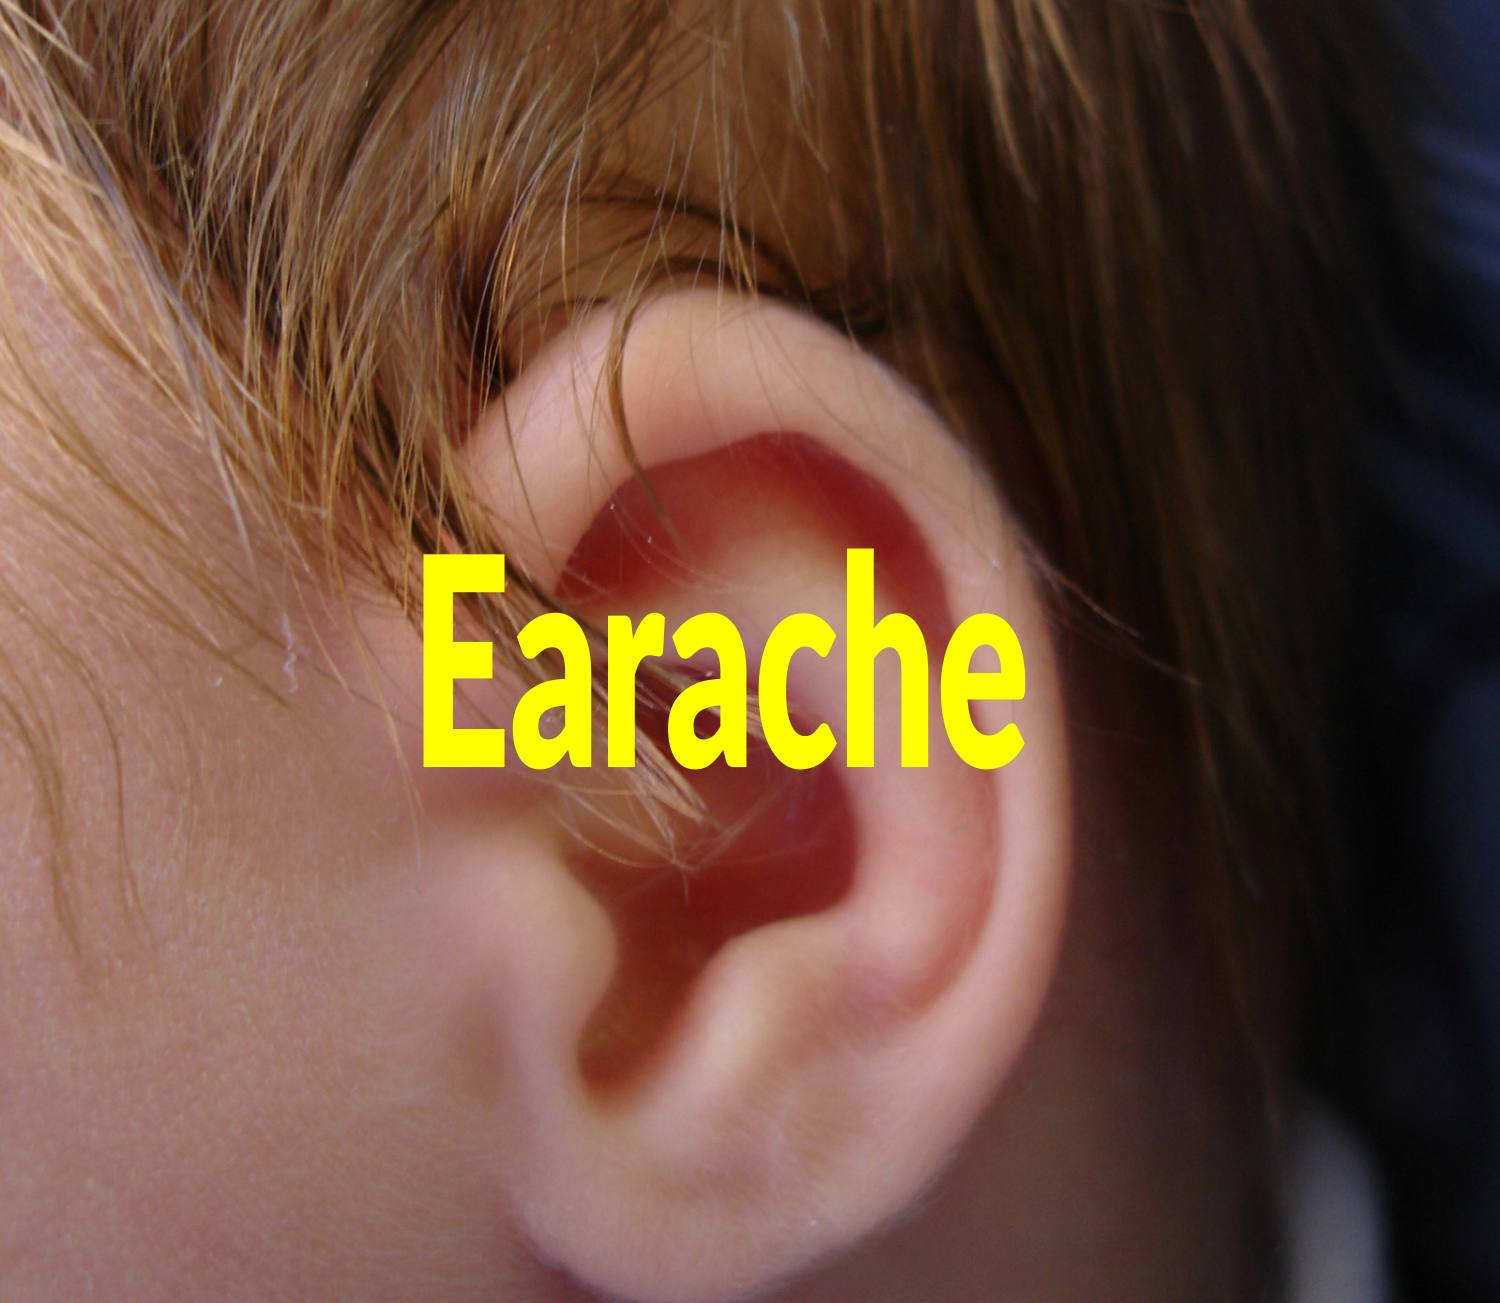 10 Home Remedies for Earcache